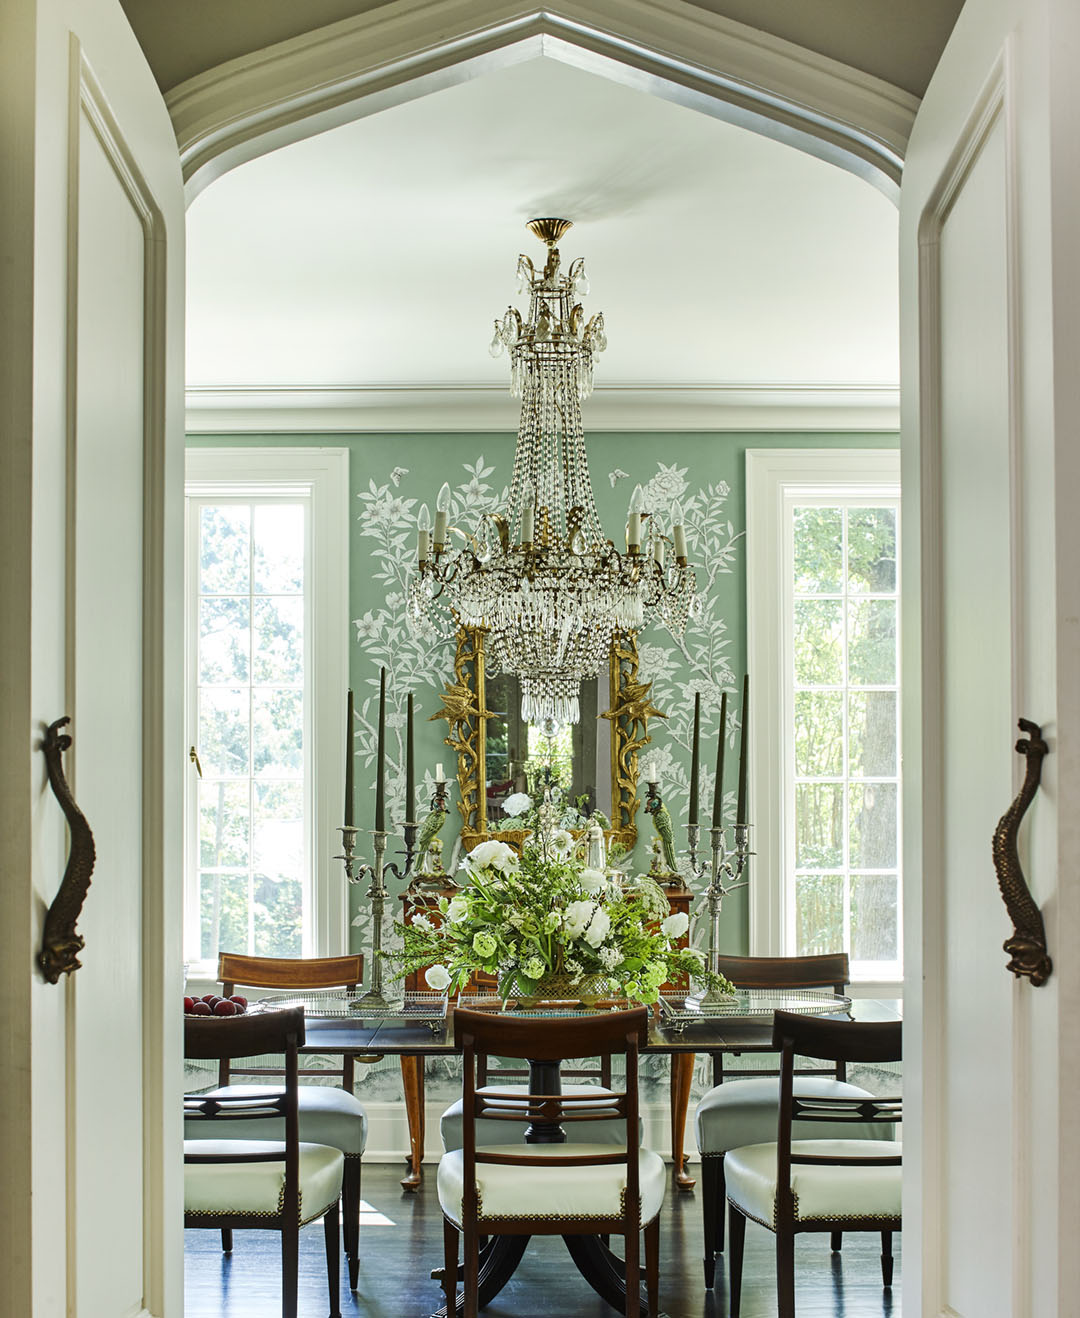 Double doors open to reveal a dining room papered in a custom, soft blue-green Gracie wallpaper, with an crystal chandelier and ornate gilt mirror